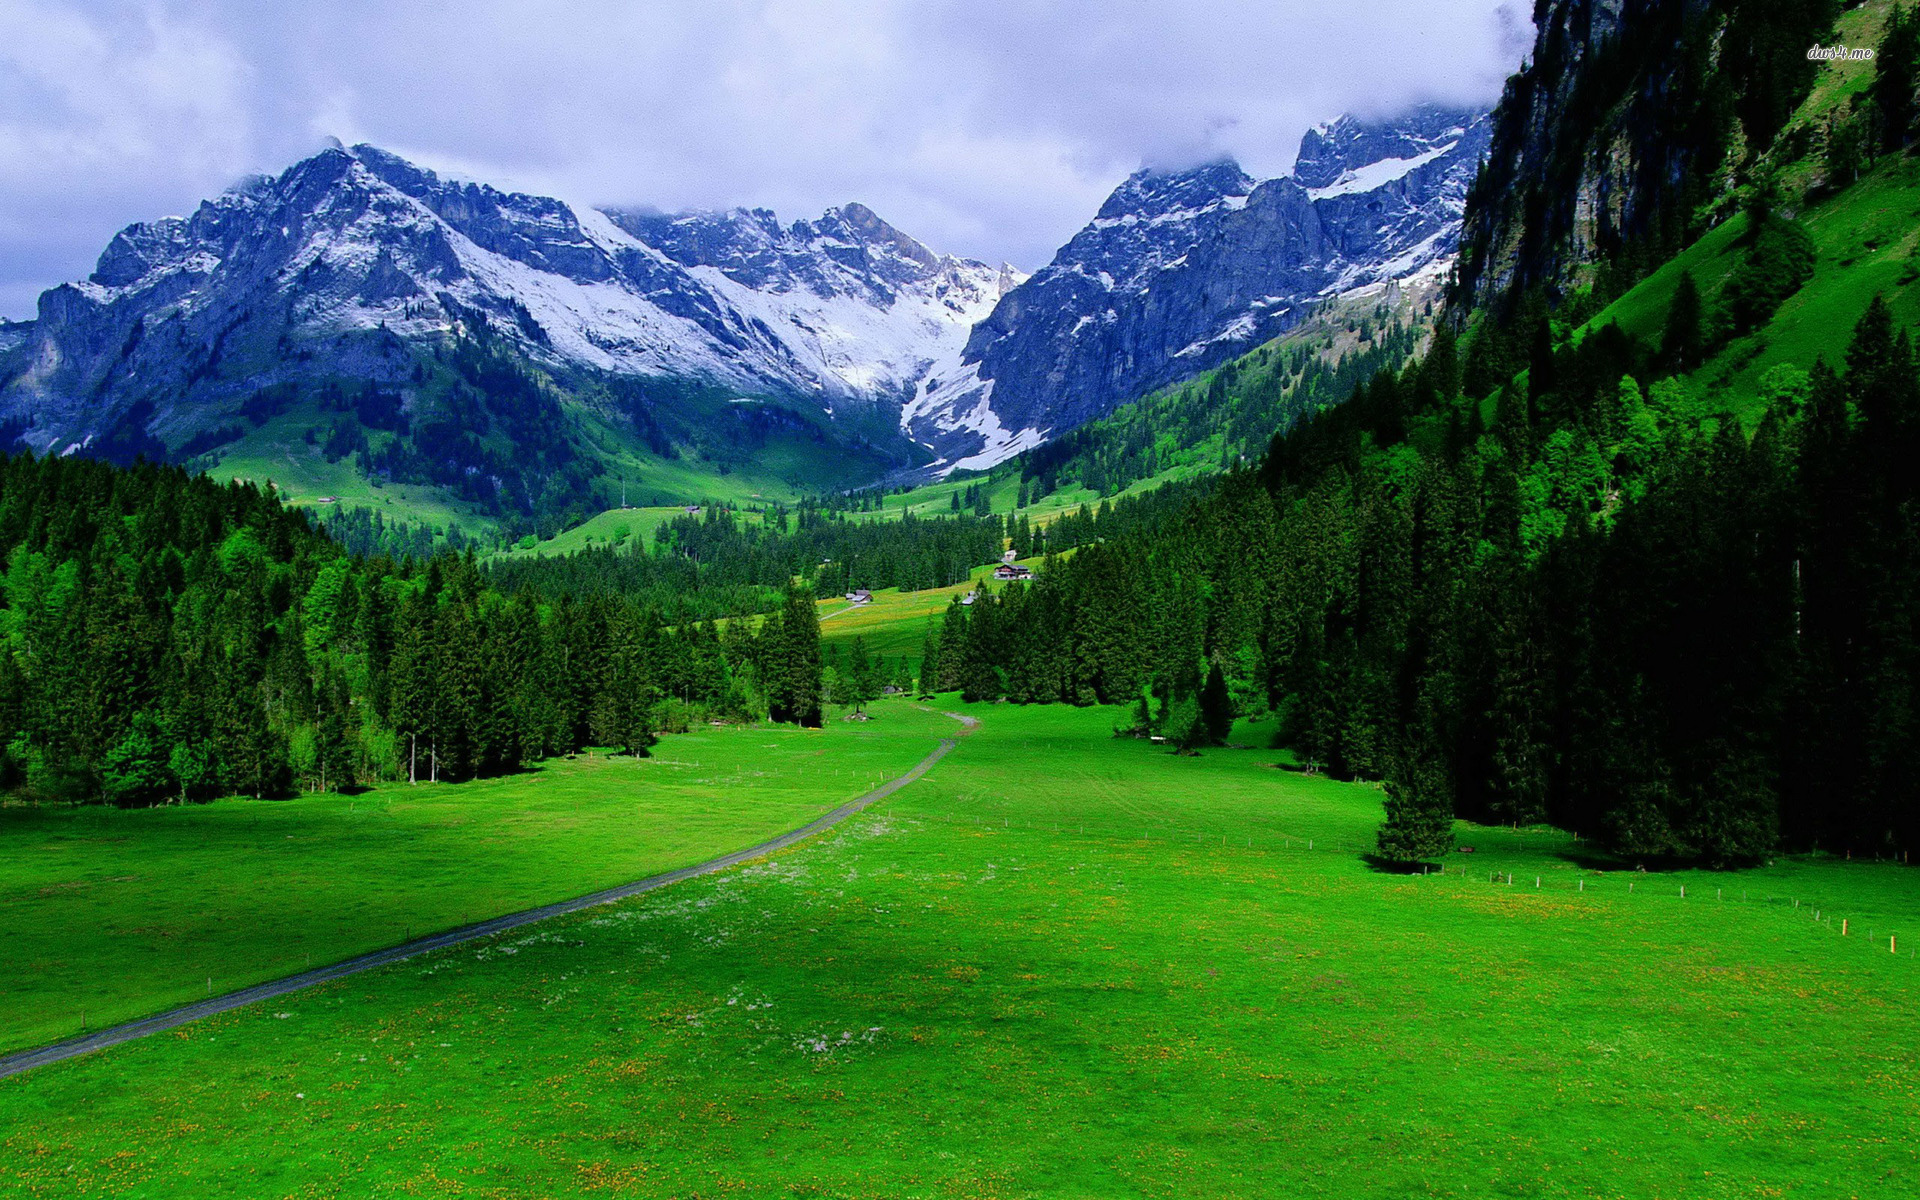 Switzerland Nature Beauty Hd Wallpaper